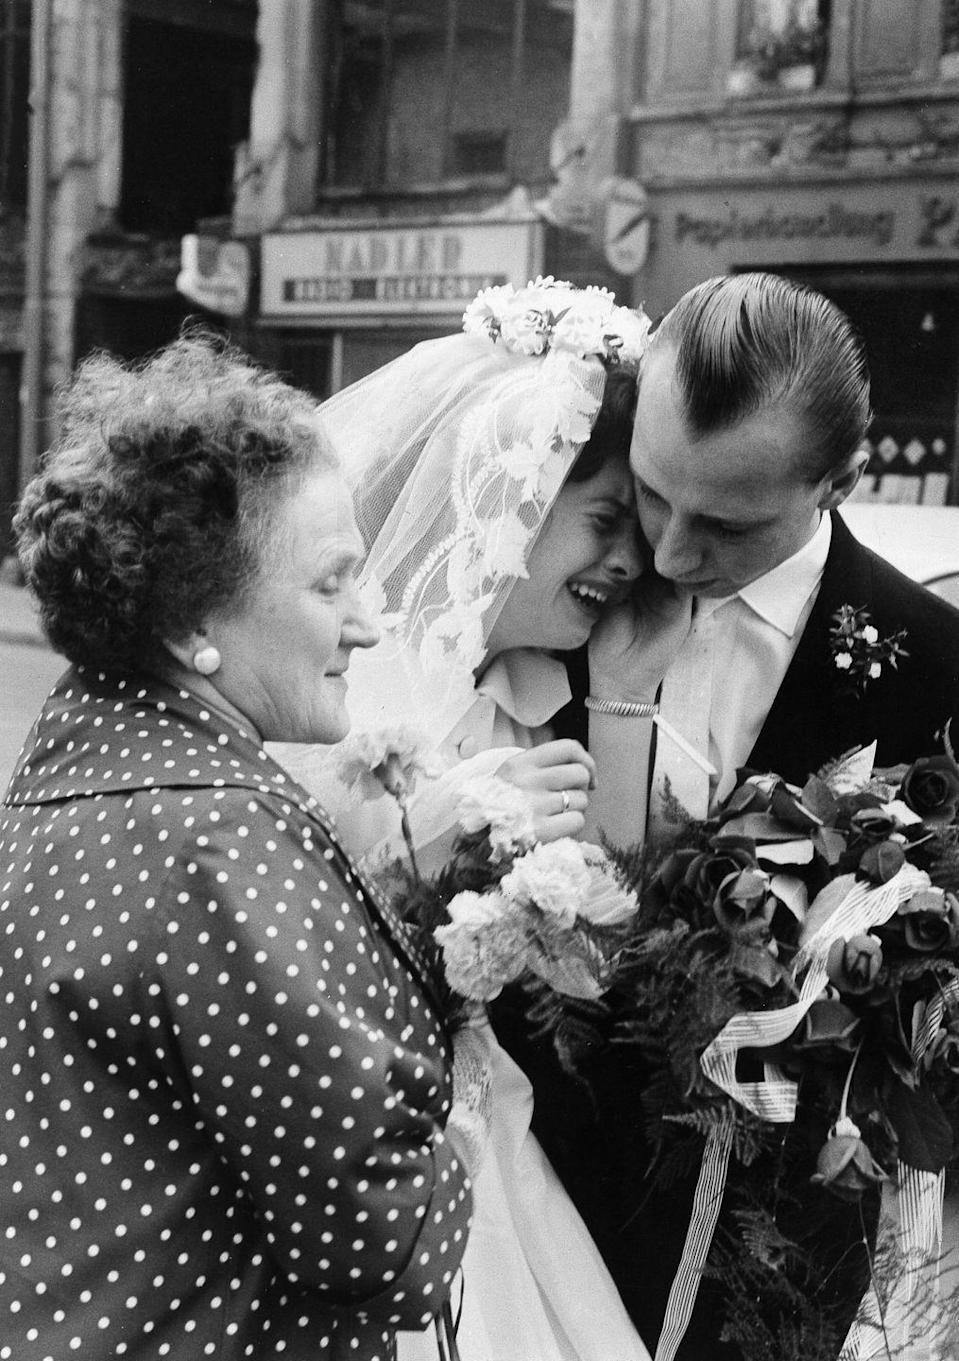 <p>The Berlin Wall was built in 1961, effectively dividing the German city in half. This photo, taken during the first year of the wall's existence, shows the bride with her parents, who resided in East Berlin and were unable to get permission to take part in their daughter's wedding in West Berlin.</p>